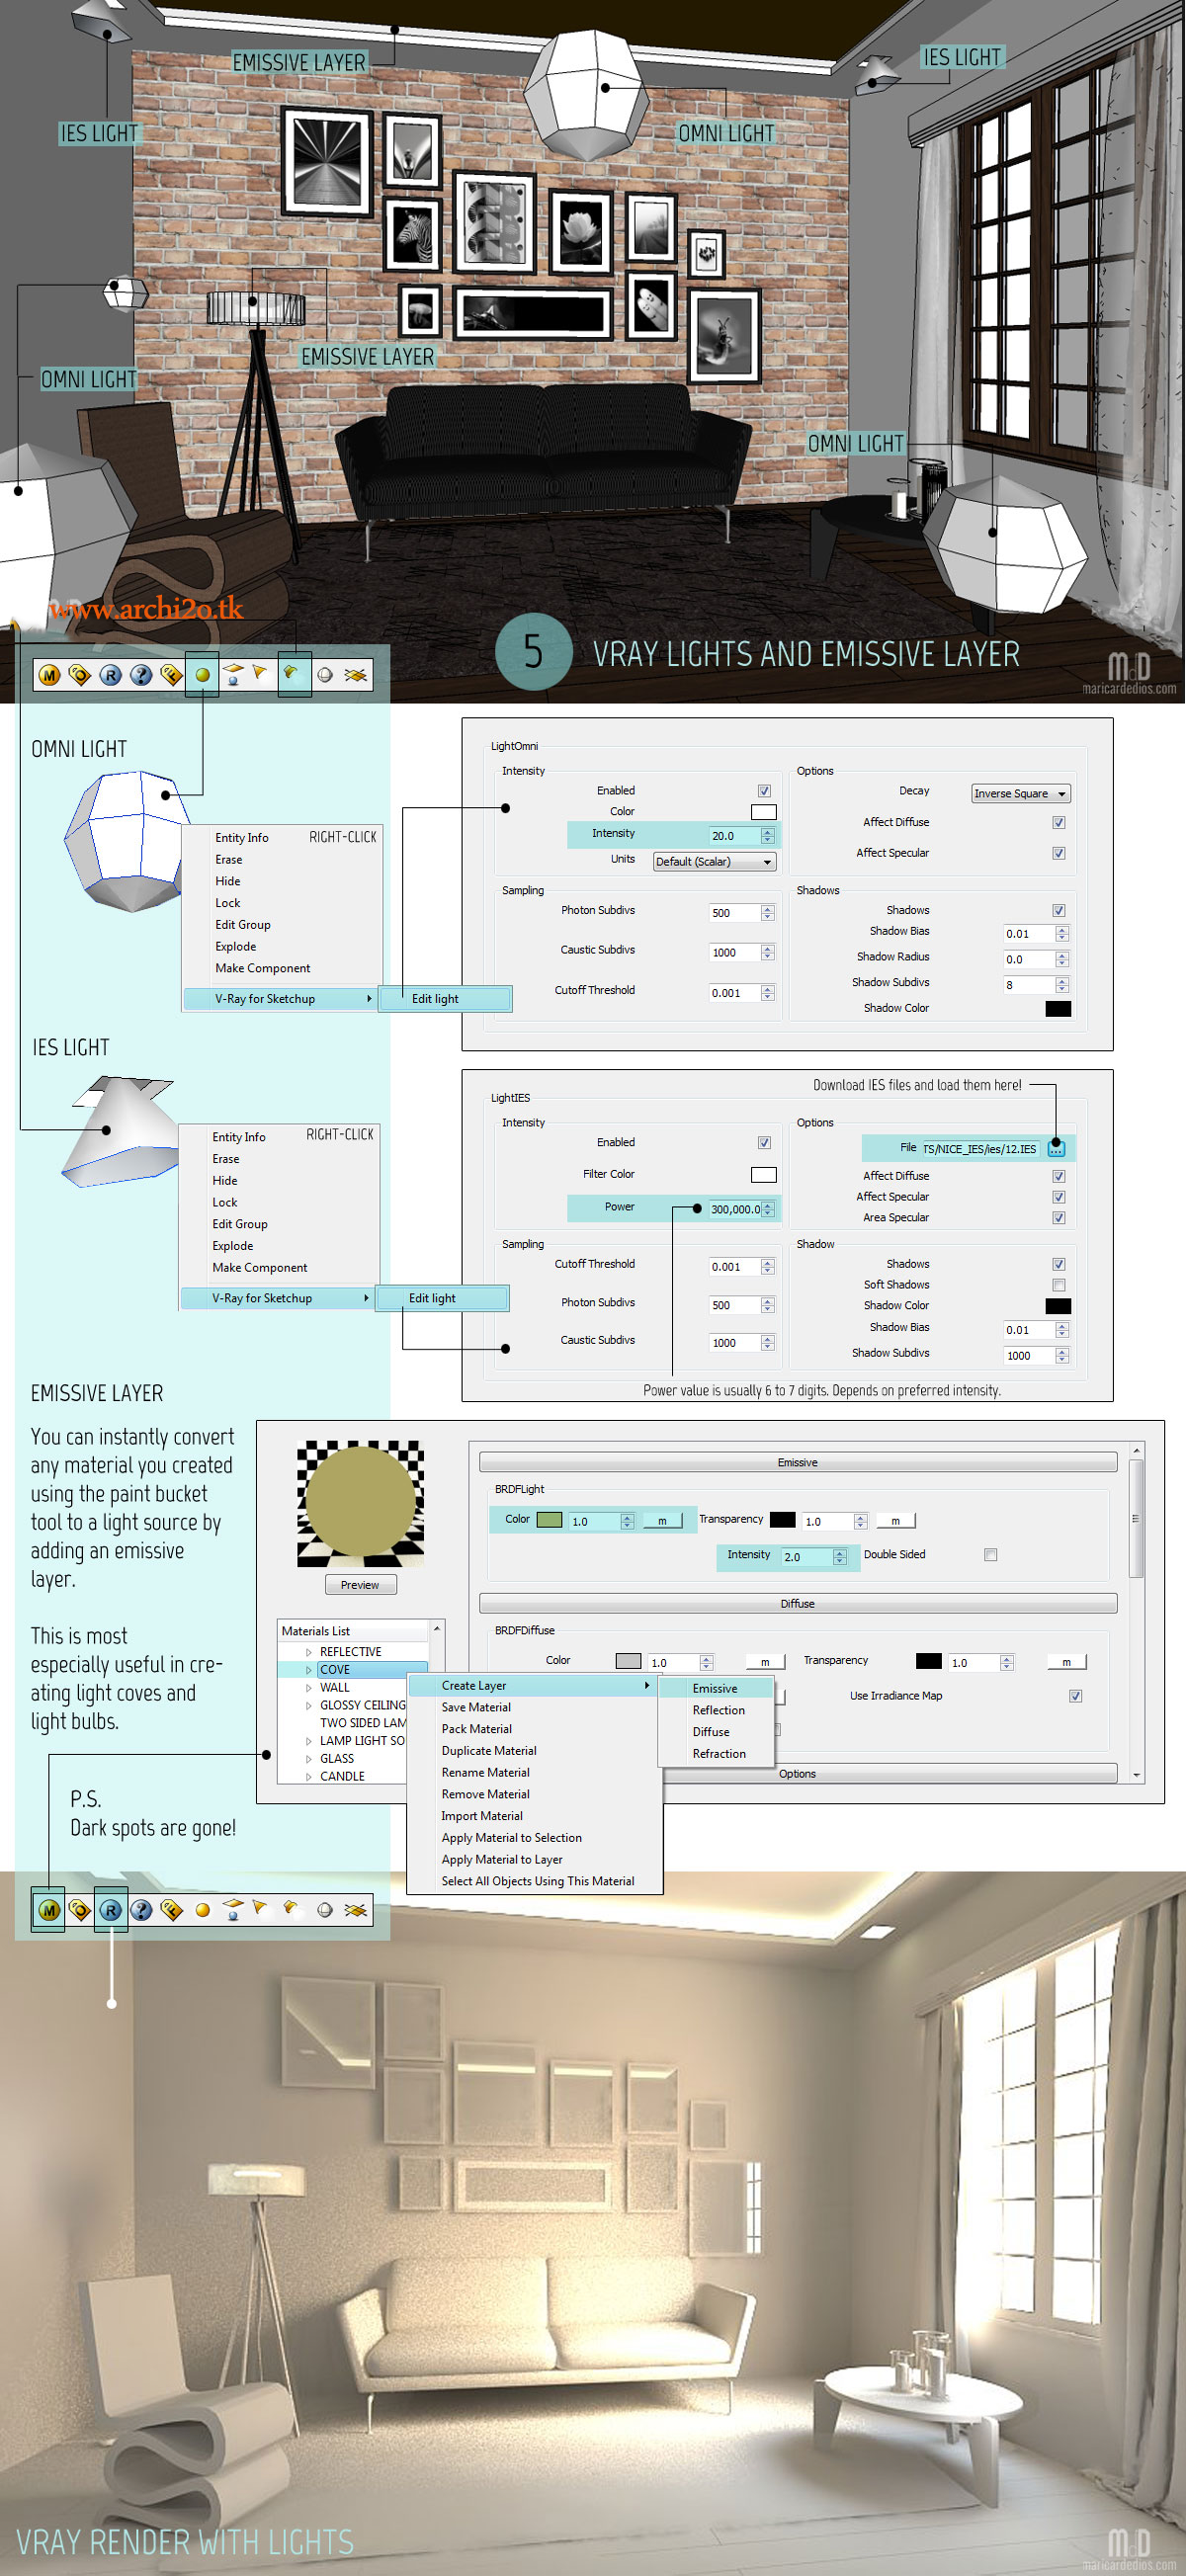 sketchup tutorial basic illumination full article atu2026 Pin by Mari